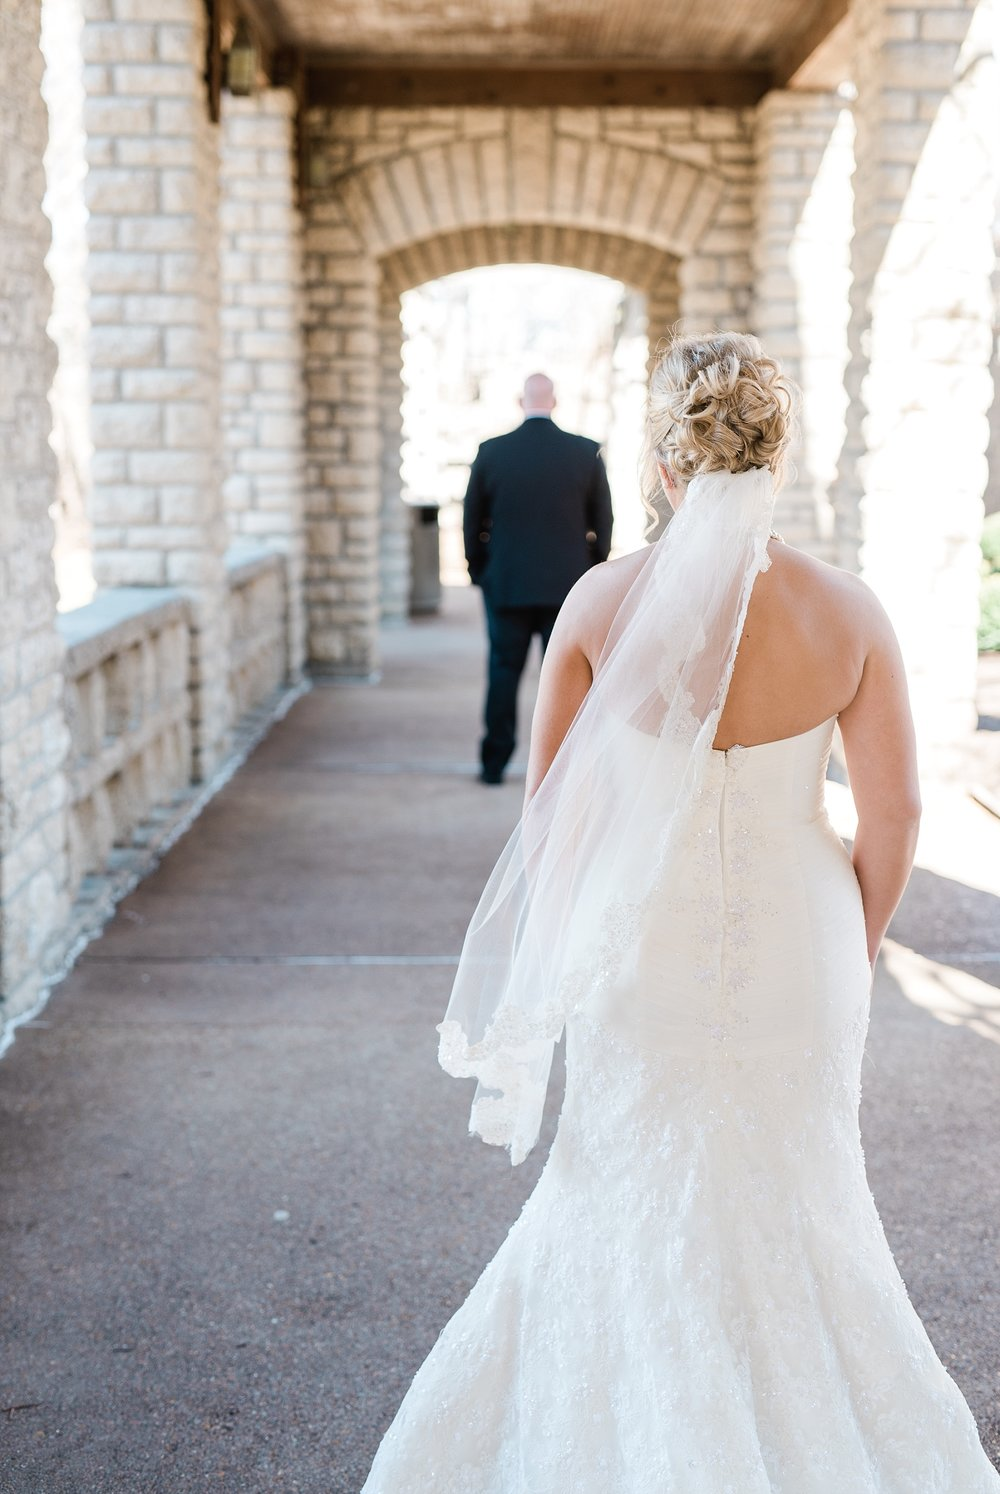 Light and Airy Spring Wedding Downtown Jefferson City Missouri State Capitol Millbottom_0005.jpg